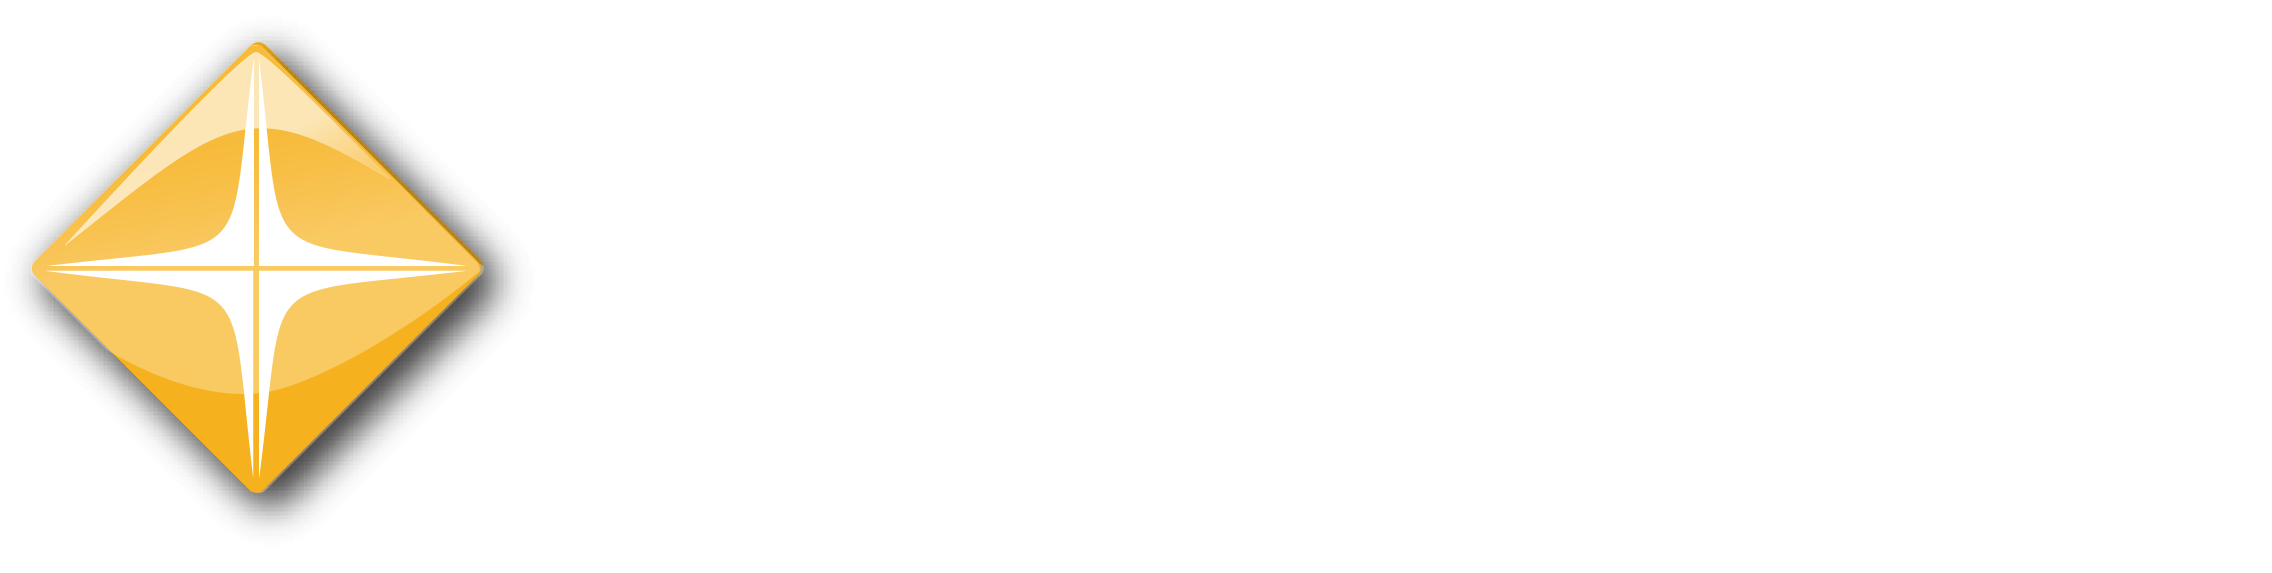 Event 1 Software, Inc.